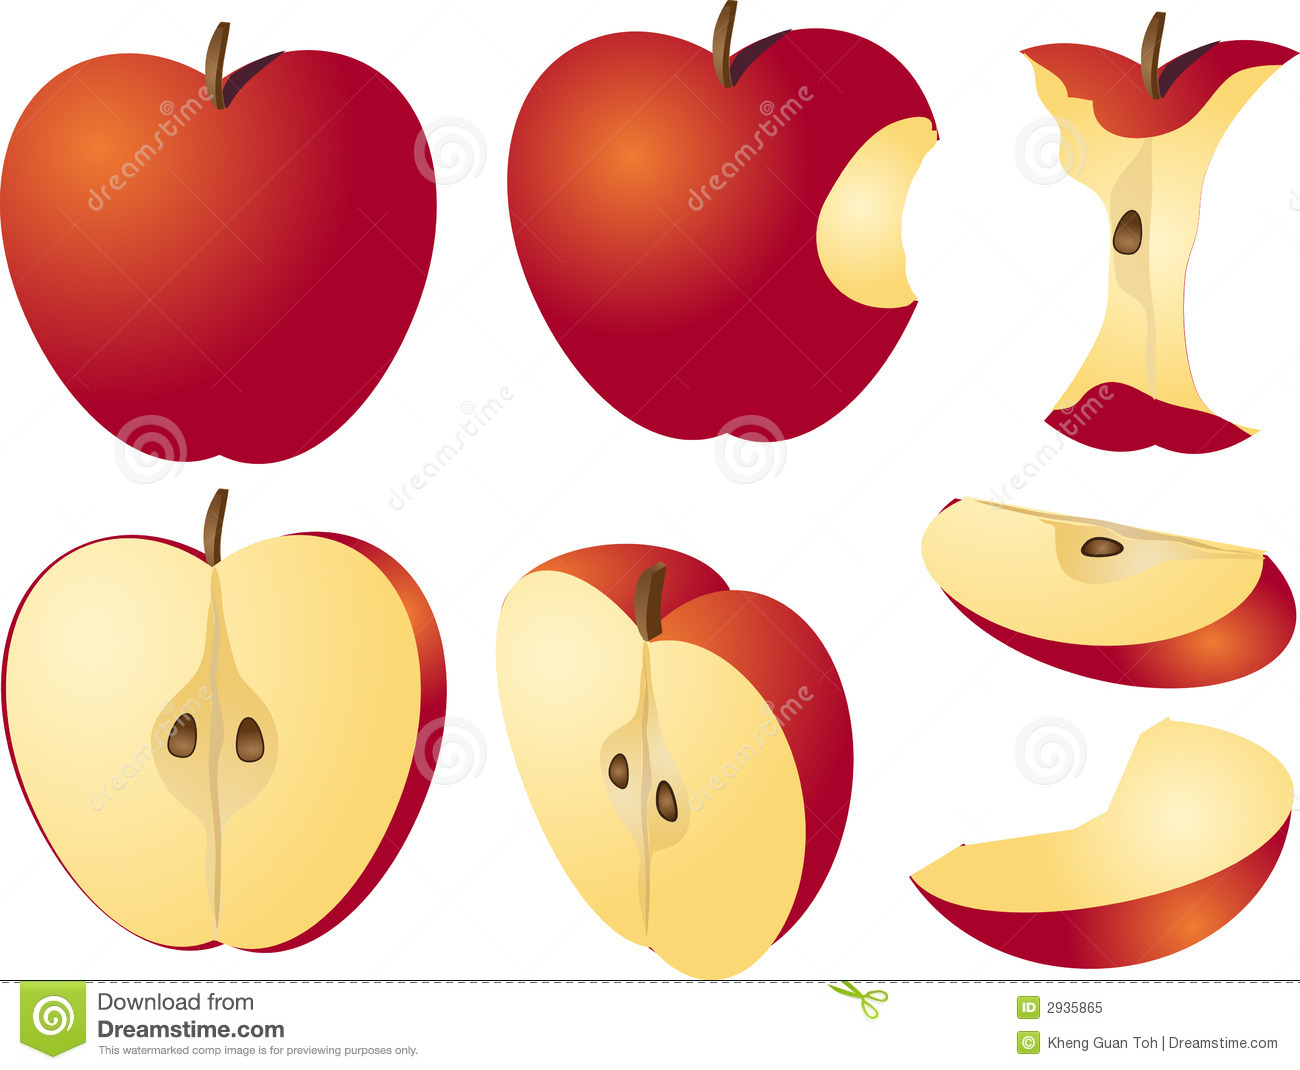 Apple Illustration Royalty Free Stock Photo